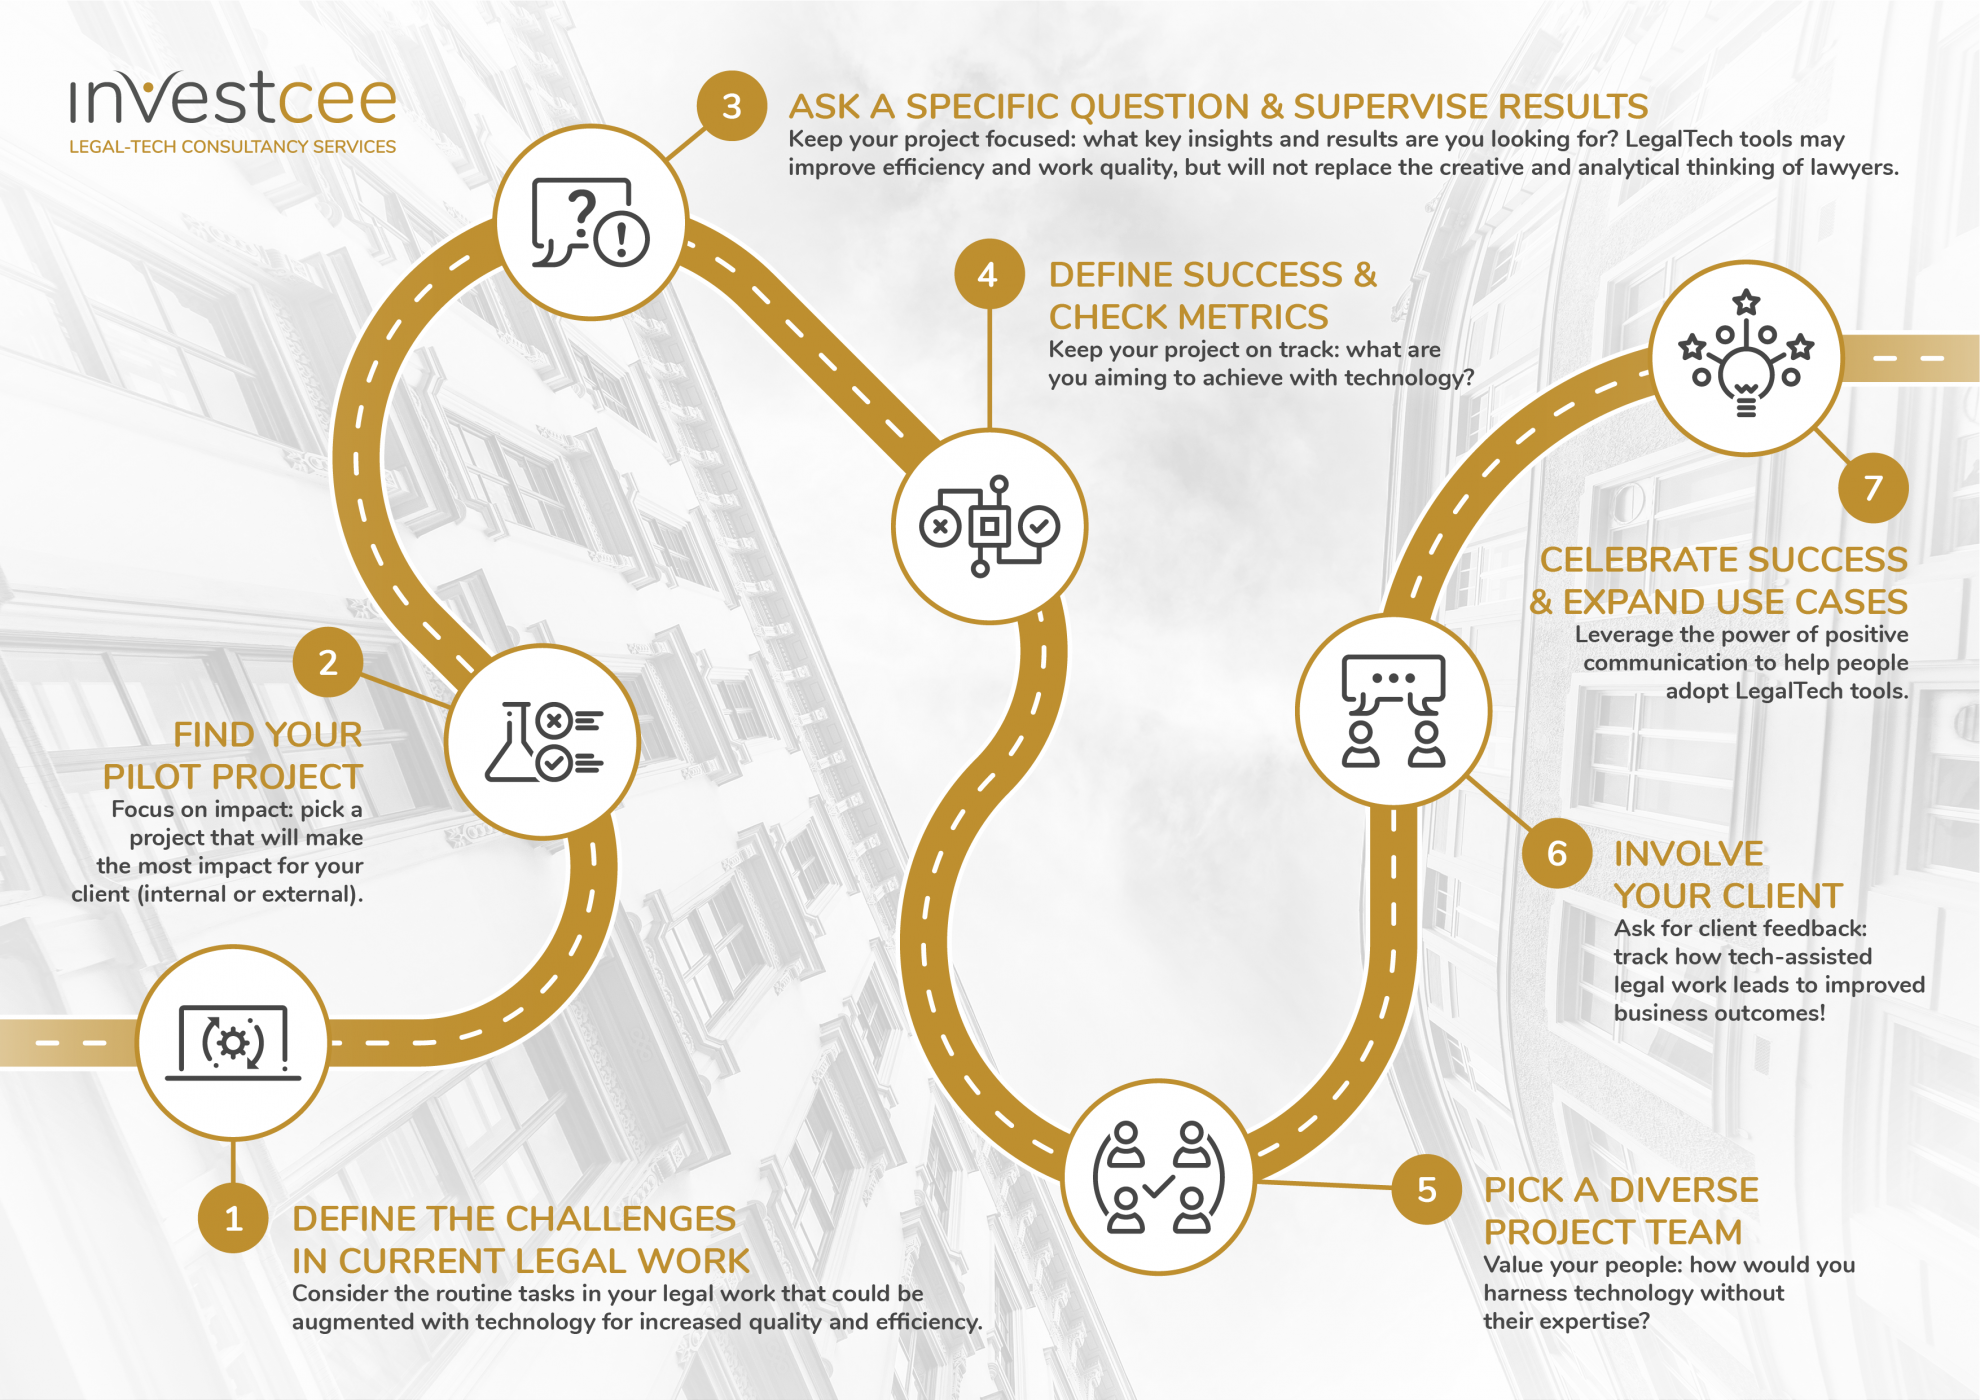 investcee legaltech consultancy legal innovation implementation roadmap